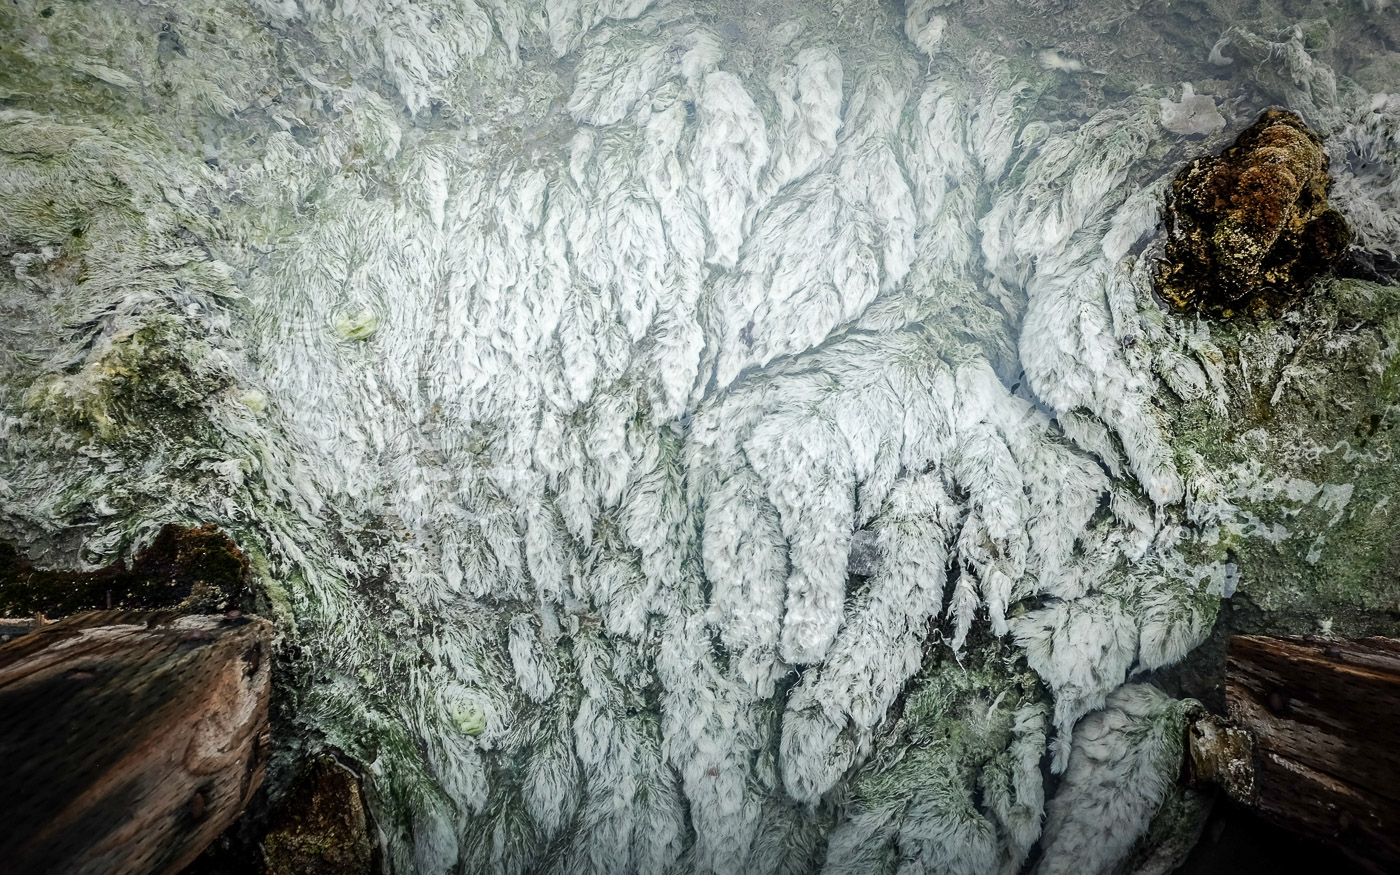 hedy bach images - Cave and Basin 4